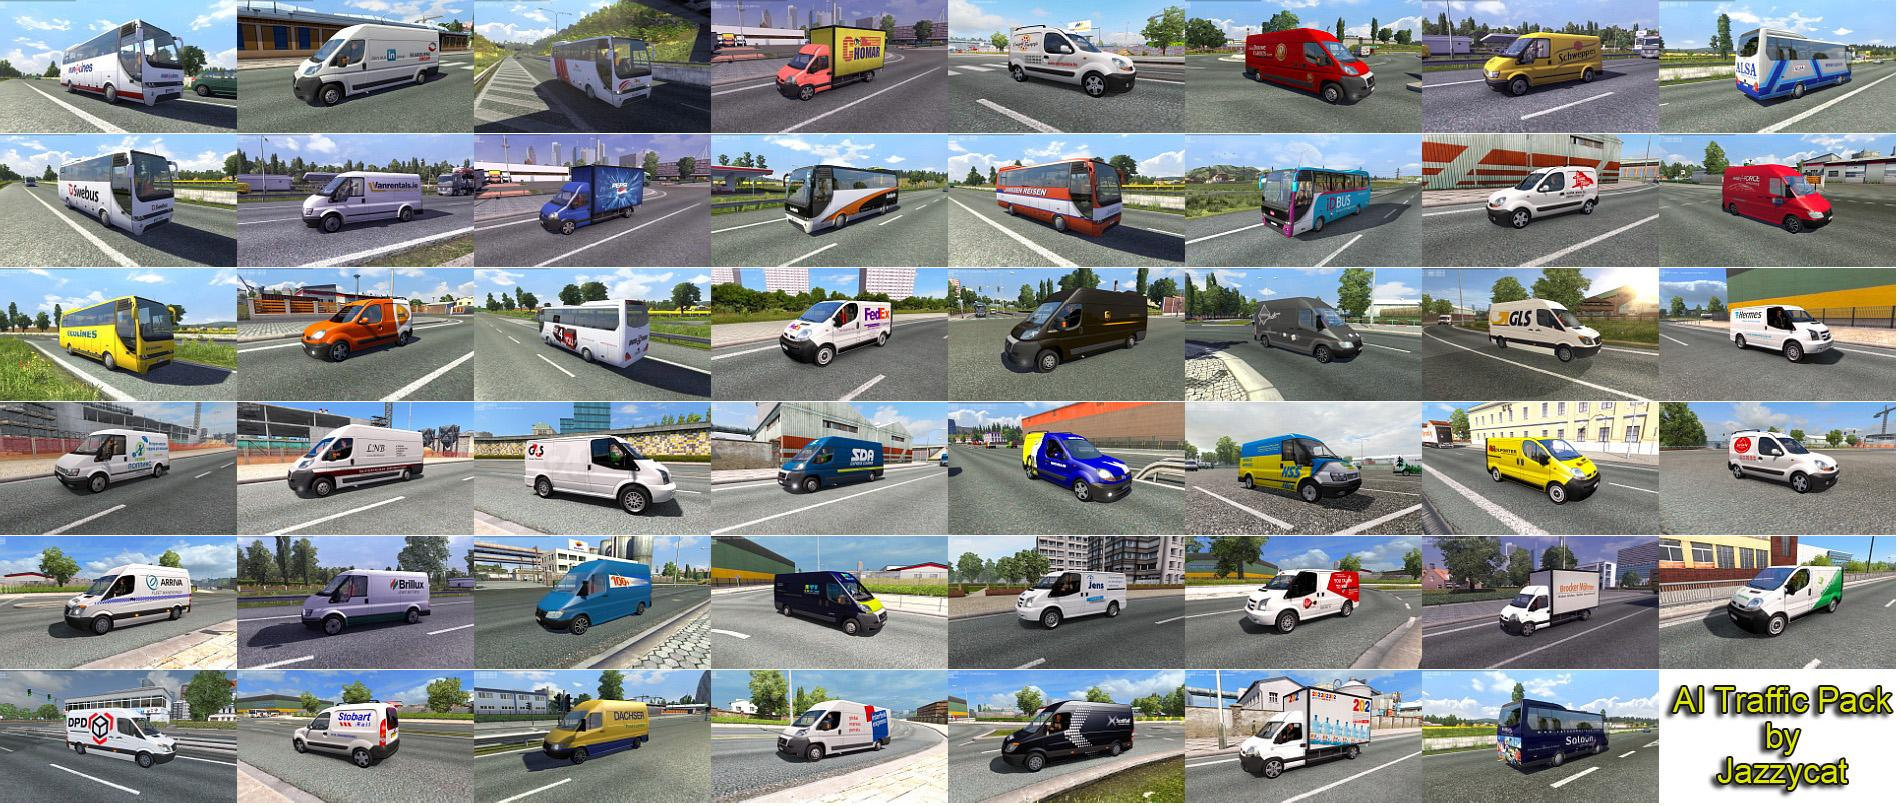 Ai Traffic Pack By Jazzycat V3 6 Ets 2 Euro Truck Simulator 2 Mods